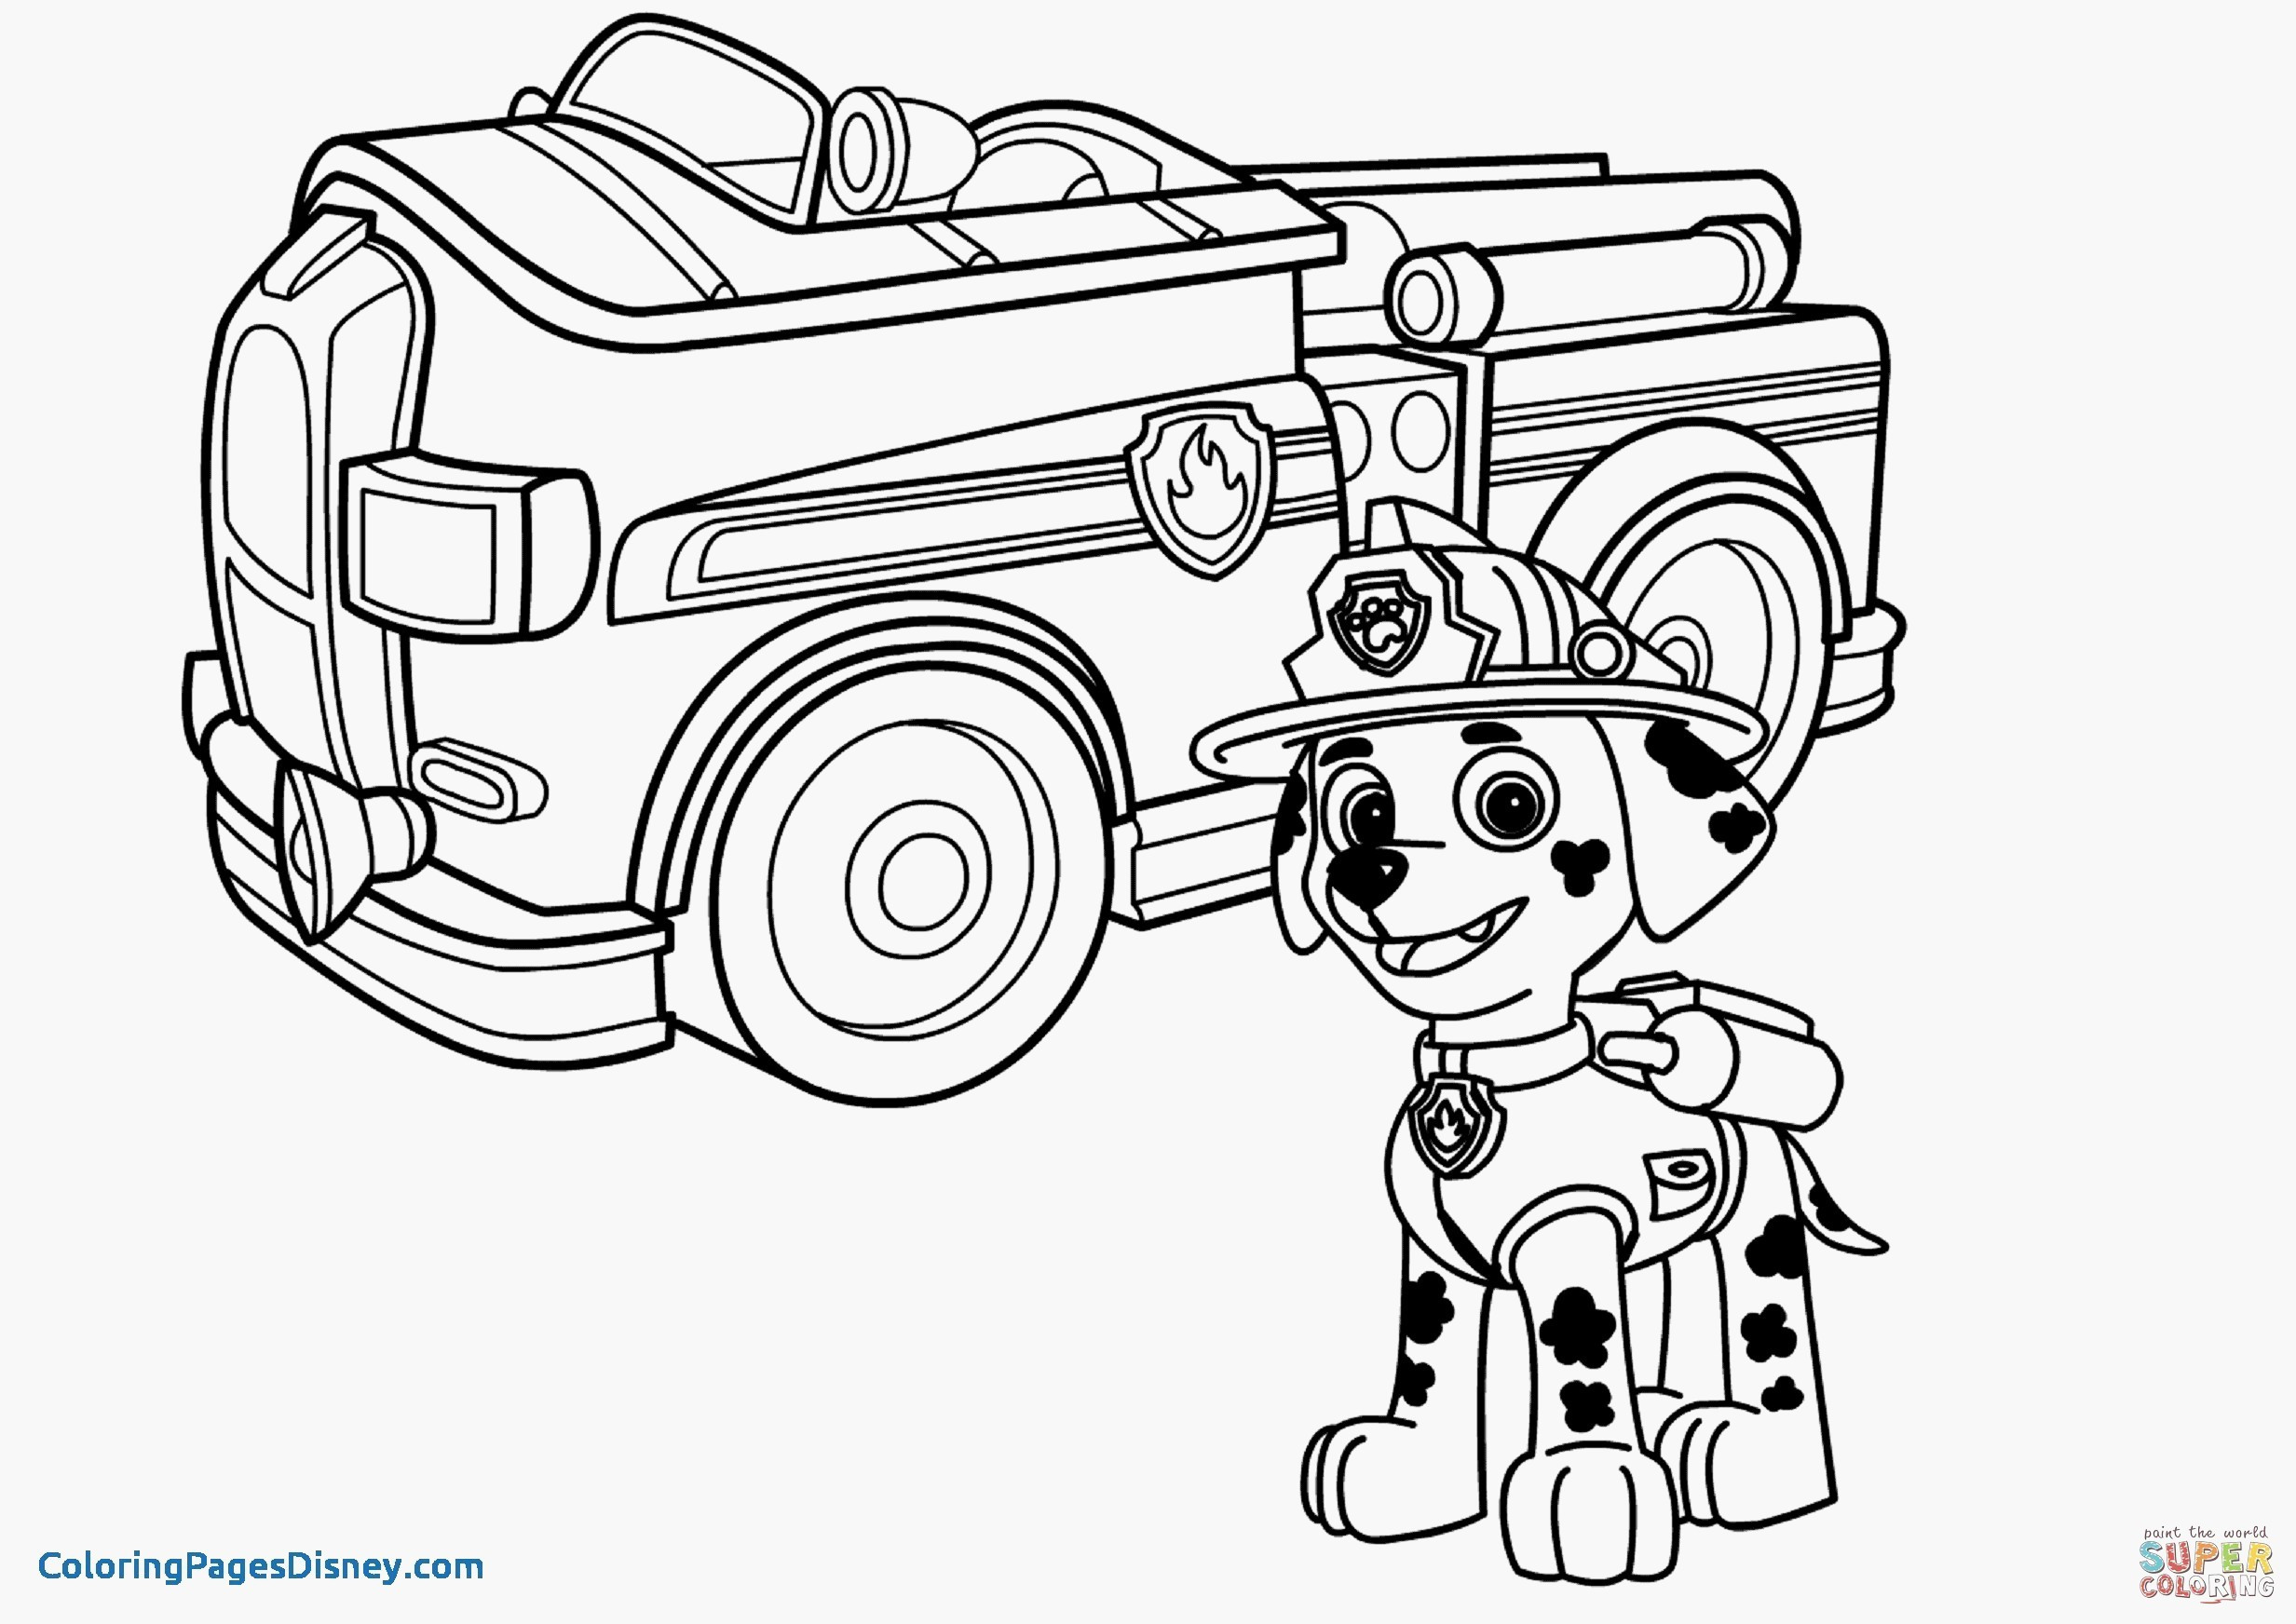 how to draw fire truck simple fire truck drawing at paintingvalleycom explore draw truck fire how to